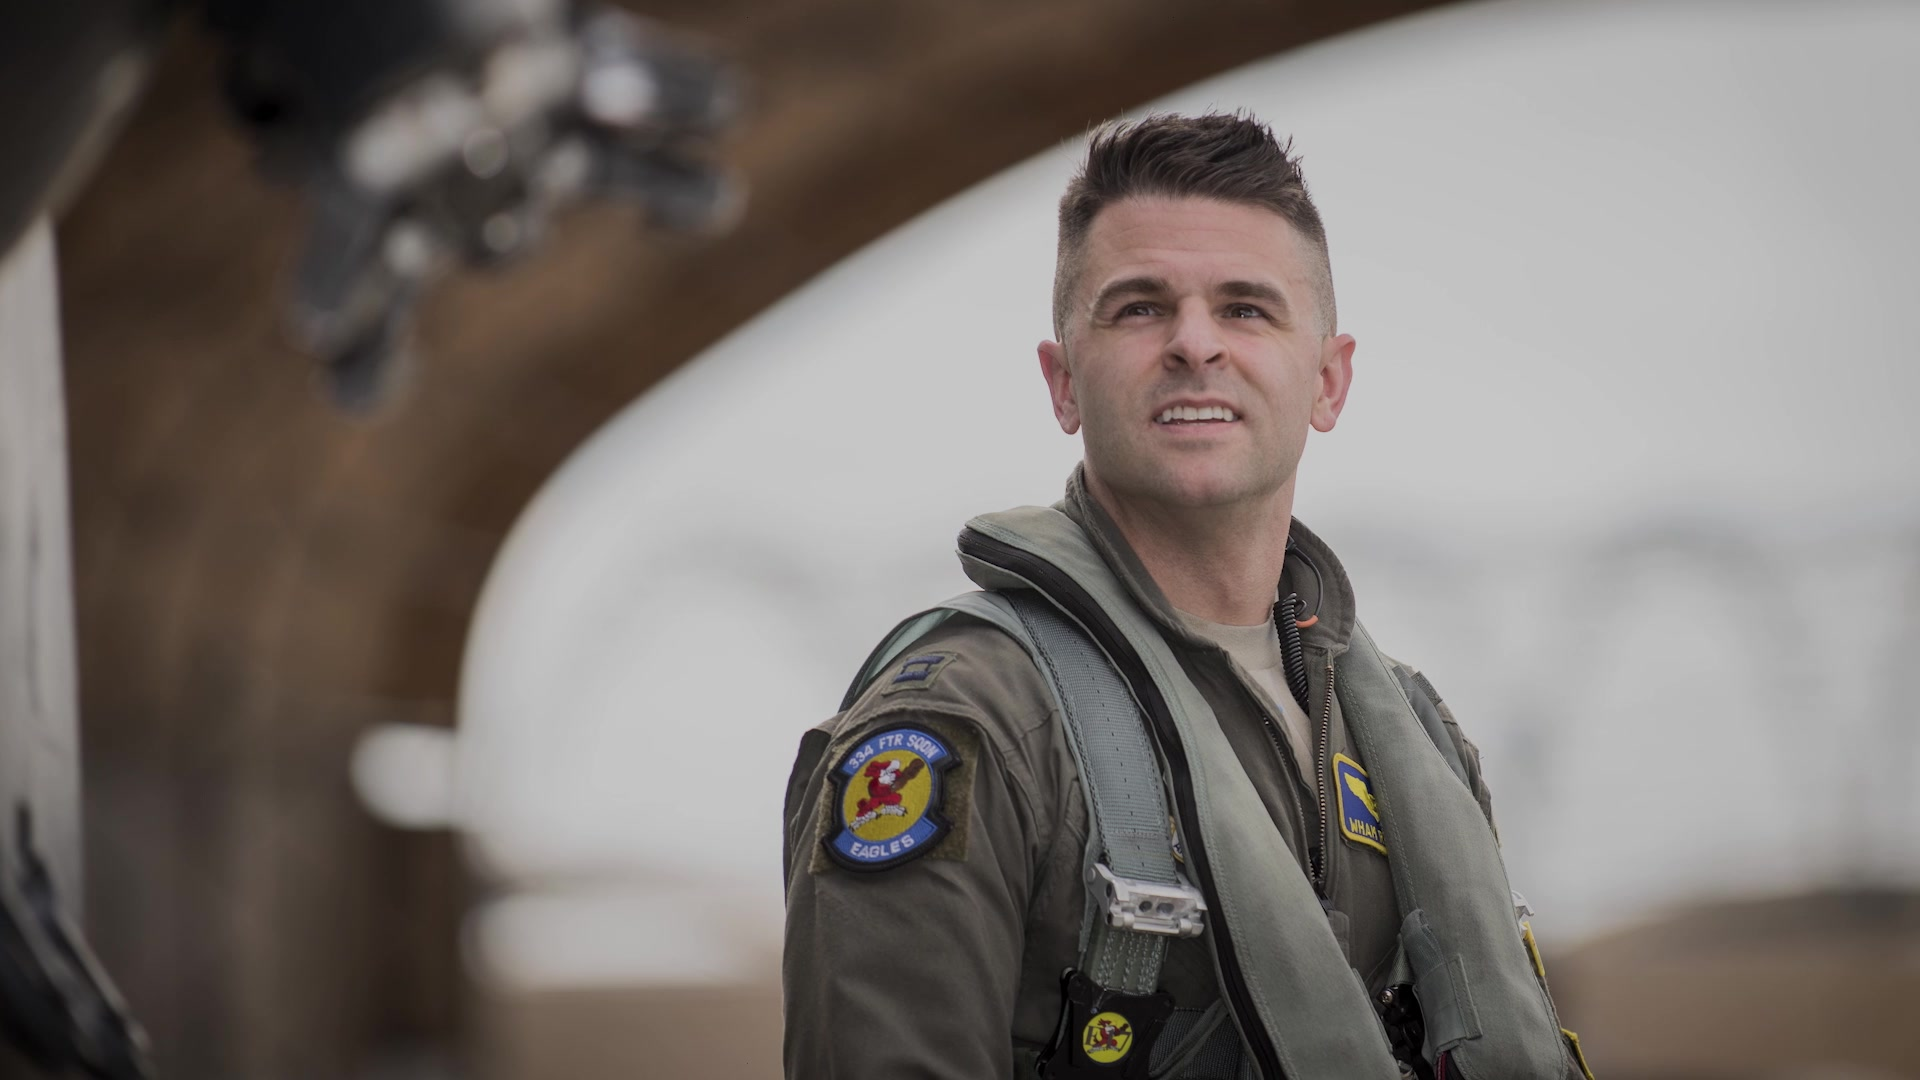 United States Air Force Captain James Reasner is an Indianapolis native and an F15E Weapons Systems Officer at Seymour Johnson AFB, North Carolina. 